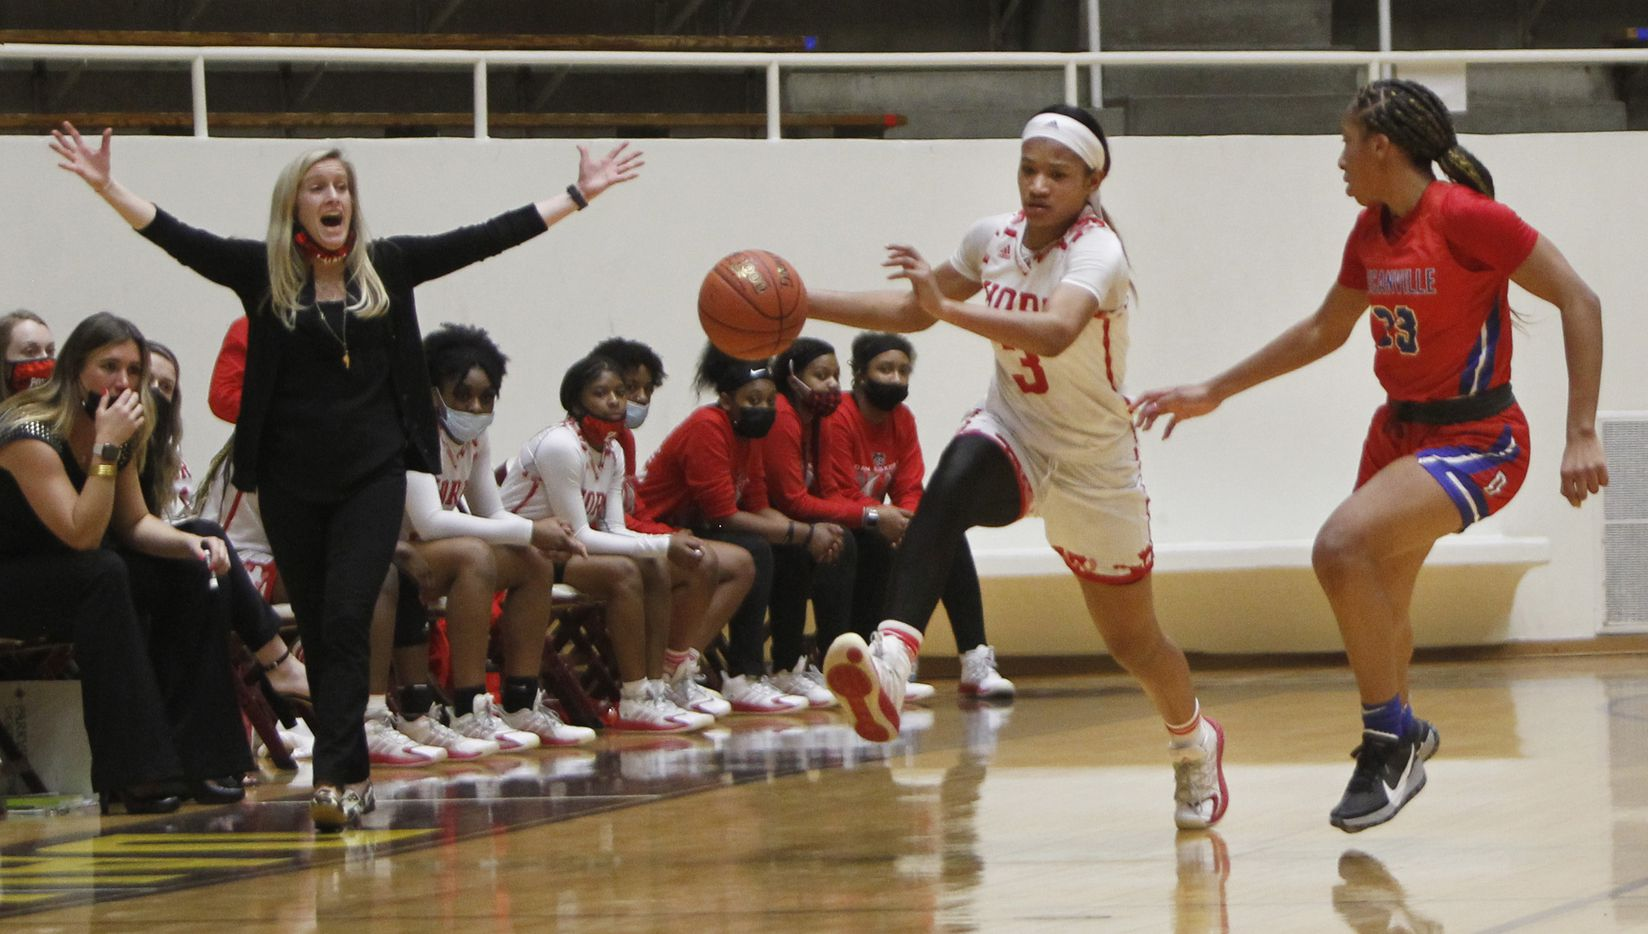 Mesquite Horn head coach Whitney Long works to inspire her players as Lady Jag guard Jasmine Shavers (3) kicks into another gear as she drives past the defense of Duncanville guard Nyah Wilson (33) during first half action. The two teams played their Class 6A area-round playoff basketball game at Loos Field House in Addison on February 23, 2021. (Steve Hamm/ Special Contributor)